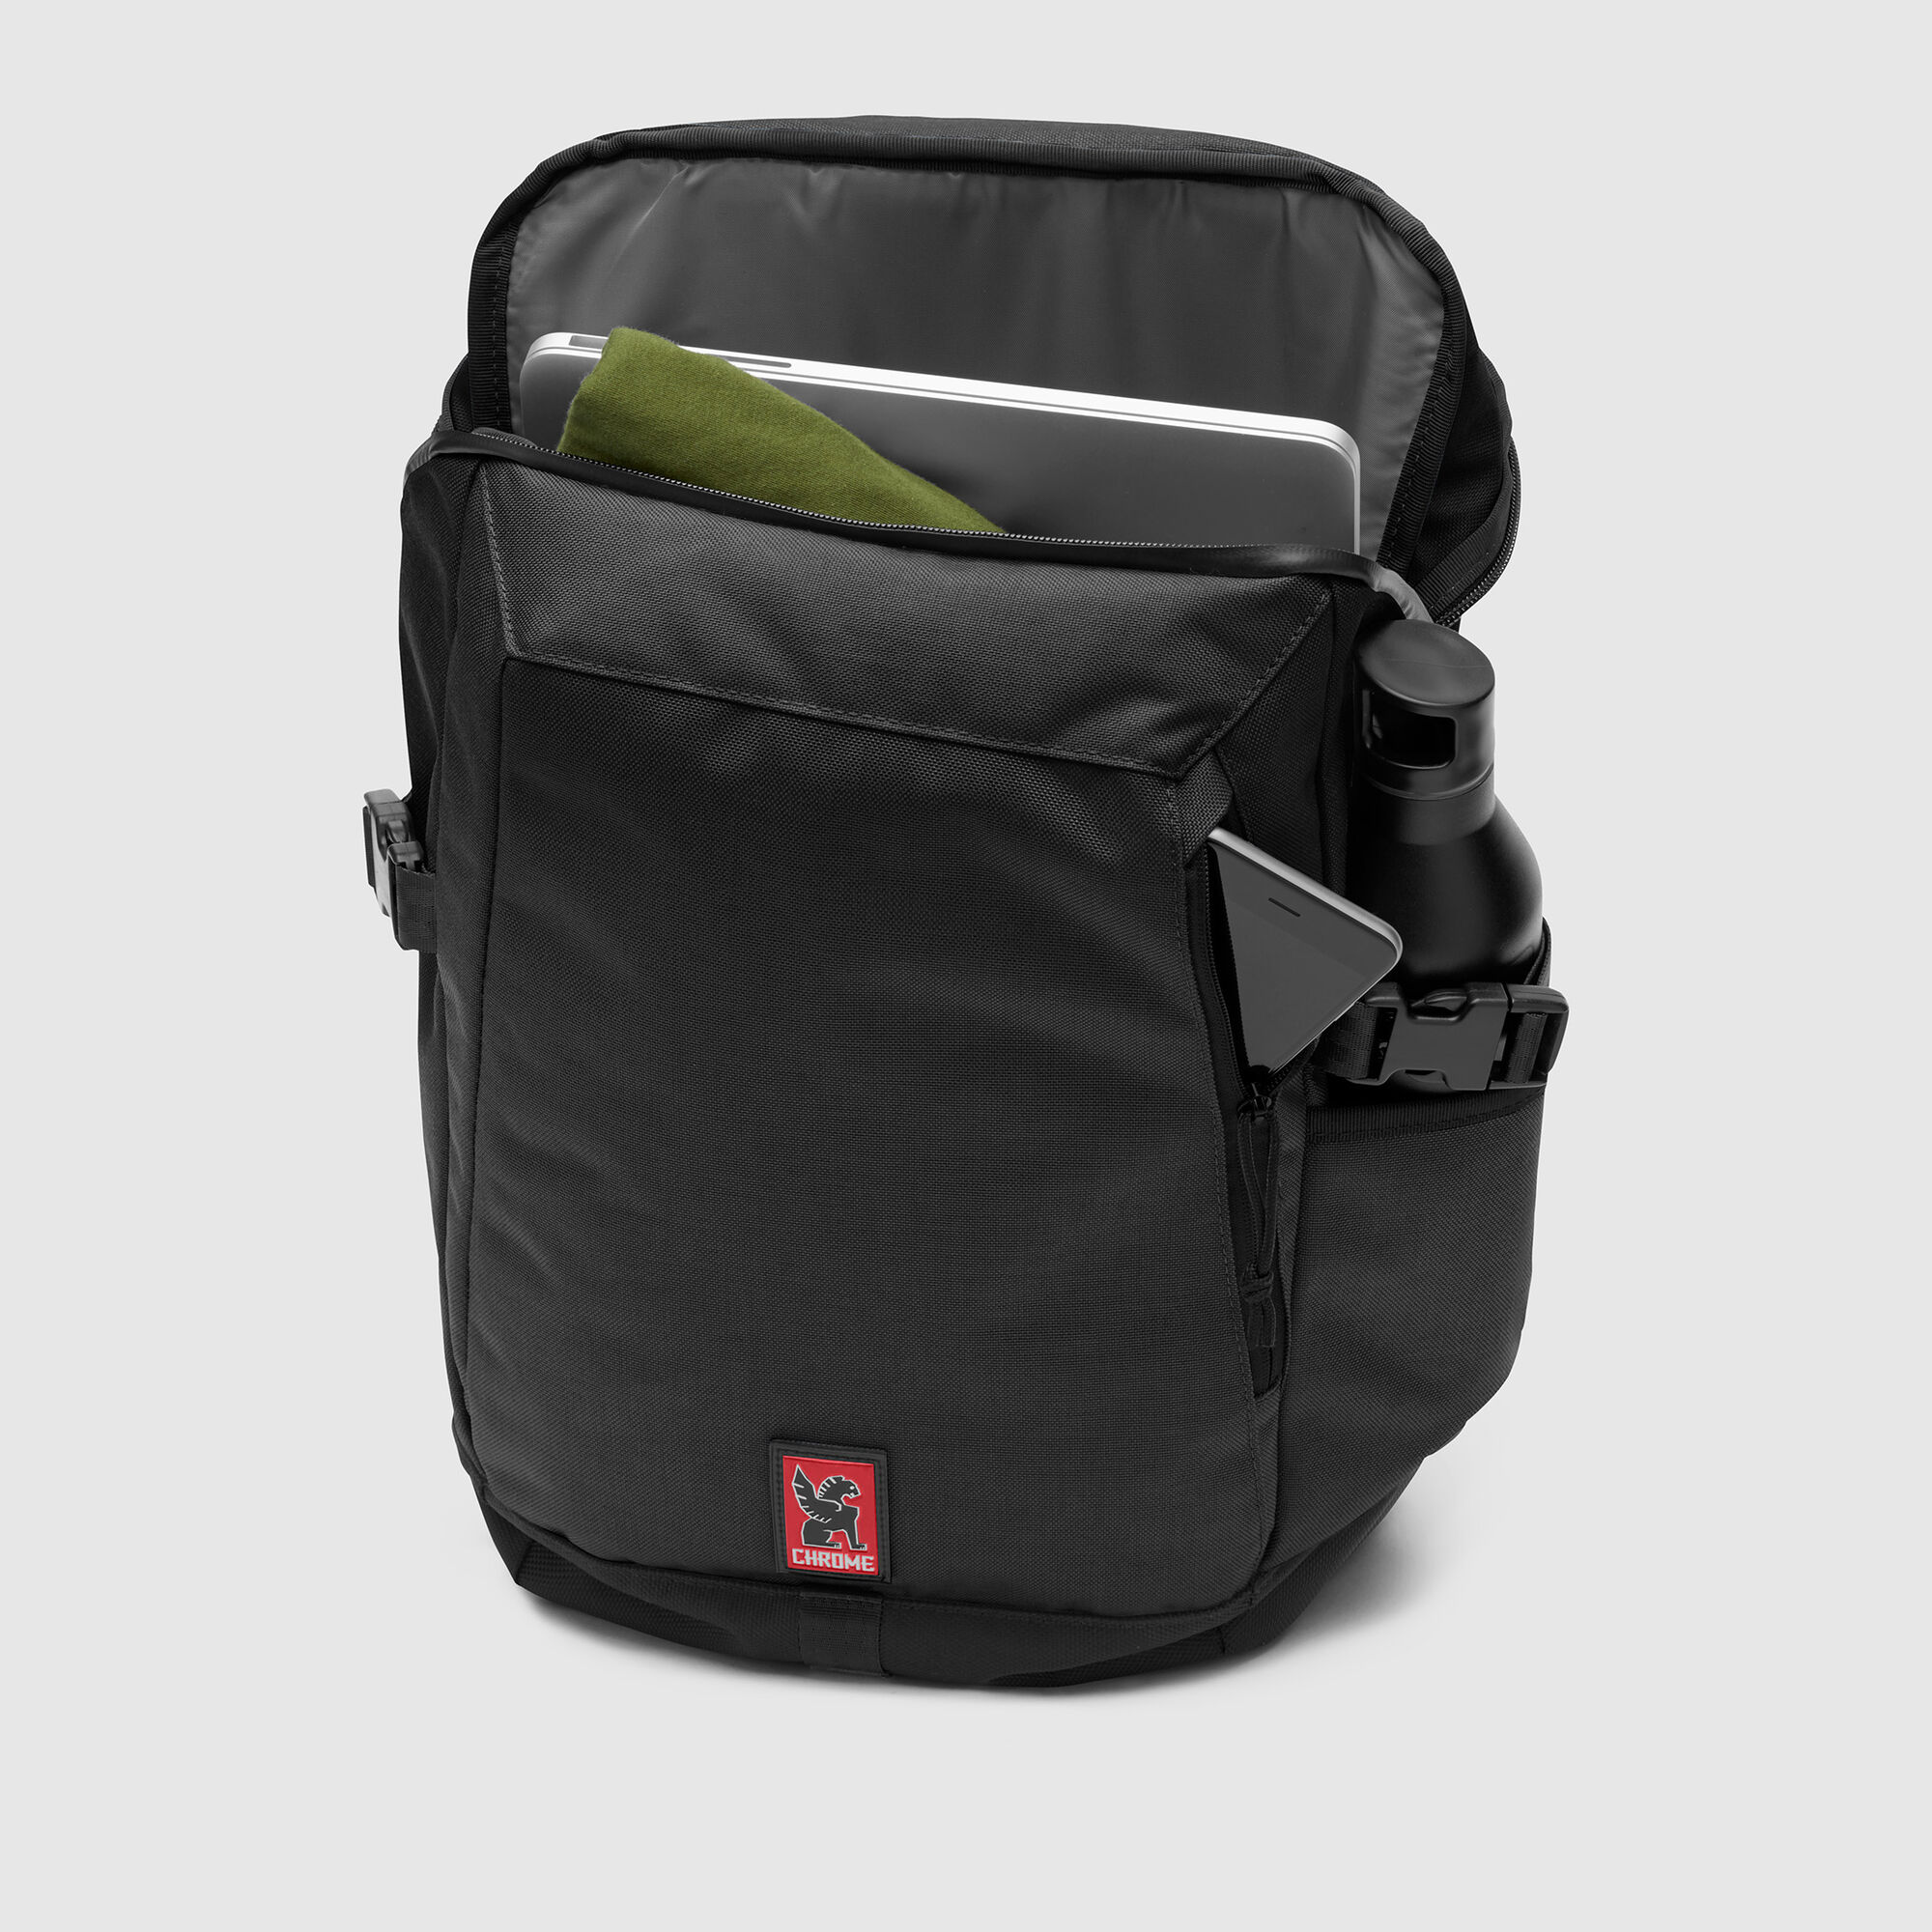 a5595442dce Rostov Backpack - Fits laptops up to 15